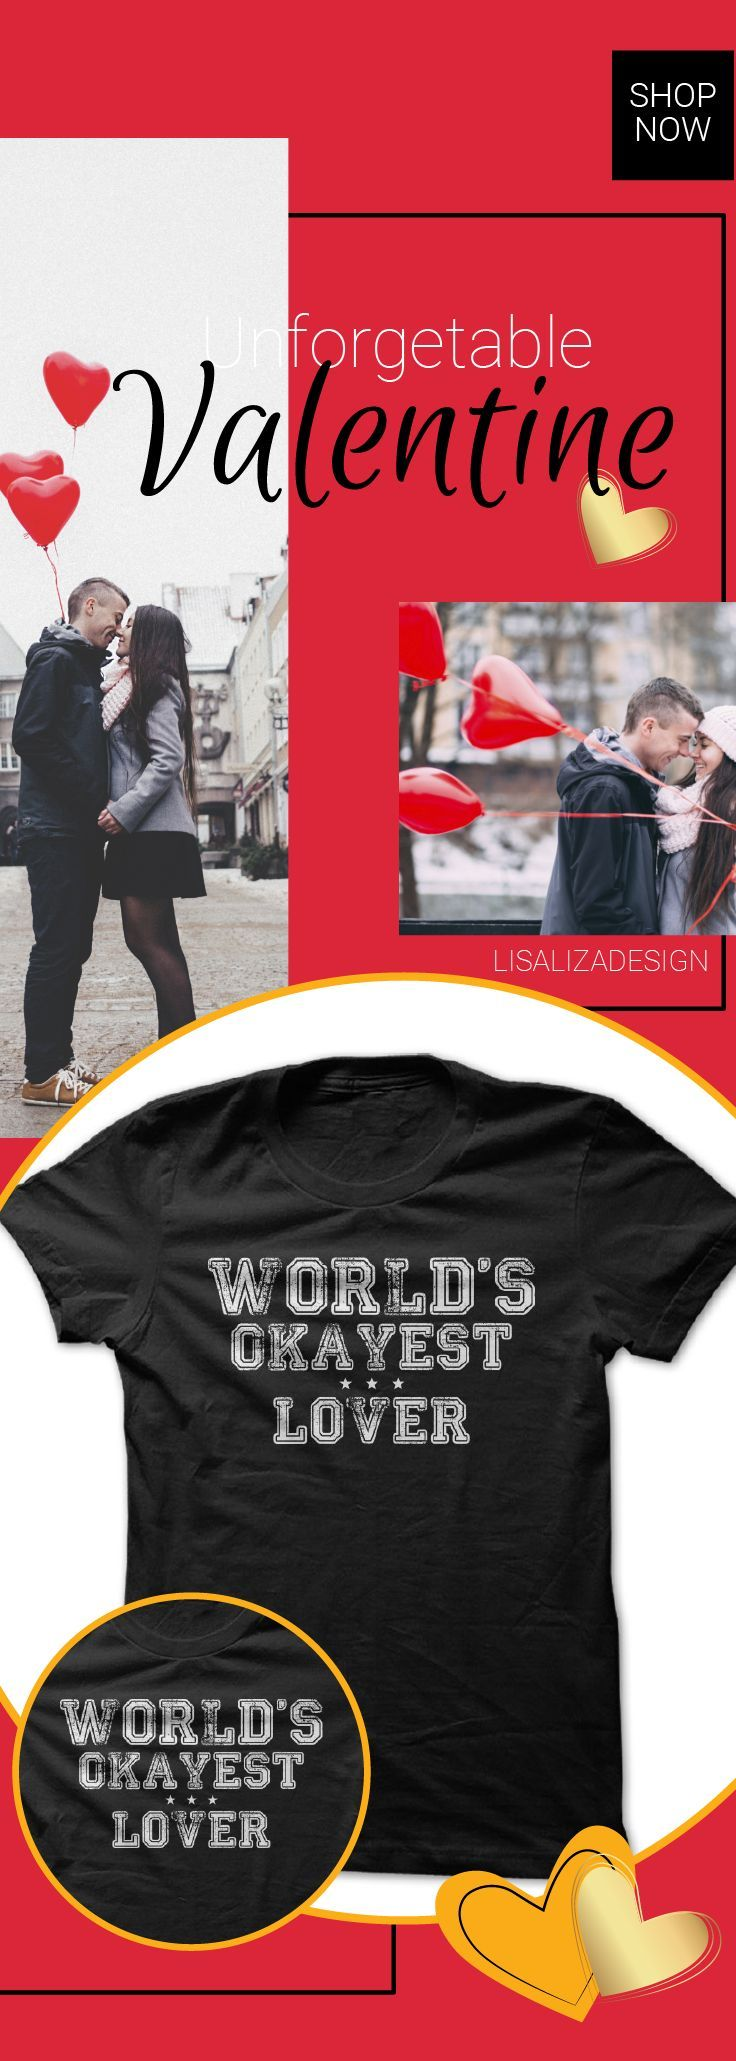 Worlds Okayest Lover.  Sunfrog Women/ Men  T Shirt / Hoodies  Love is in the air . Be My Valentine.  Shop for Darling Valentine TShirt from here. #valentine #valentinesday #valentinegift #lover #couple #inlove #Forhim #valentineforhim #forher #valentineday #redbubble #lisaliza #giftideas #present #ideas #february #love #boyfriend #girlfriend #Loveyou #Valentinegift #Forher